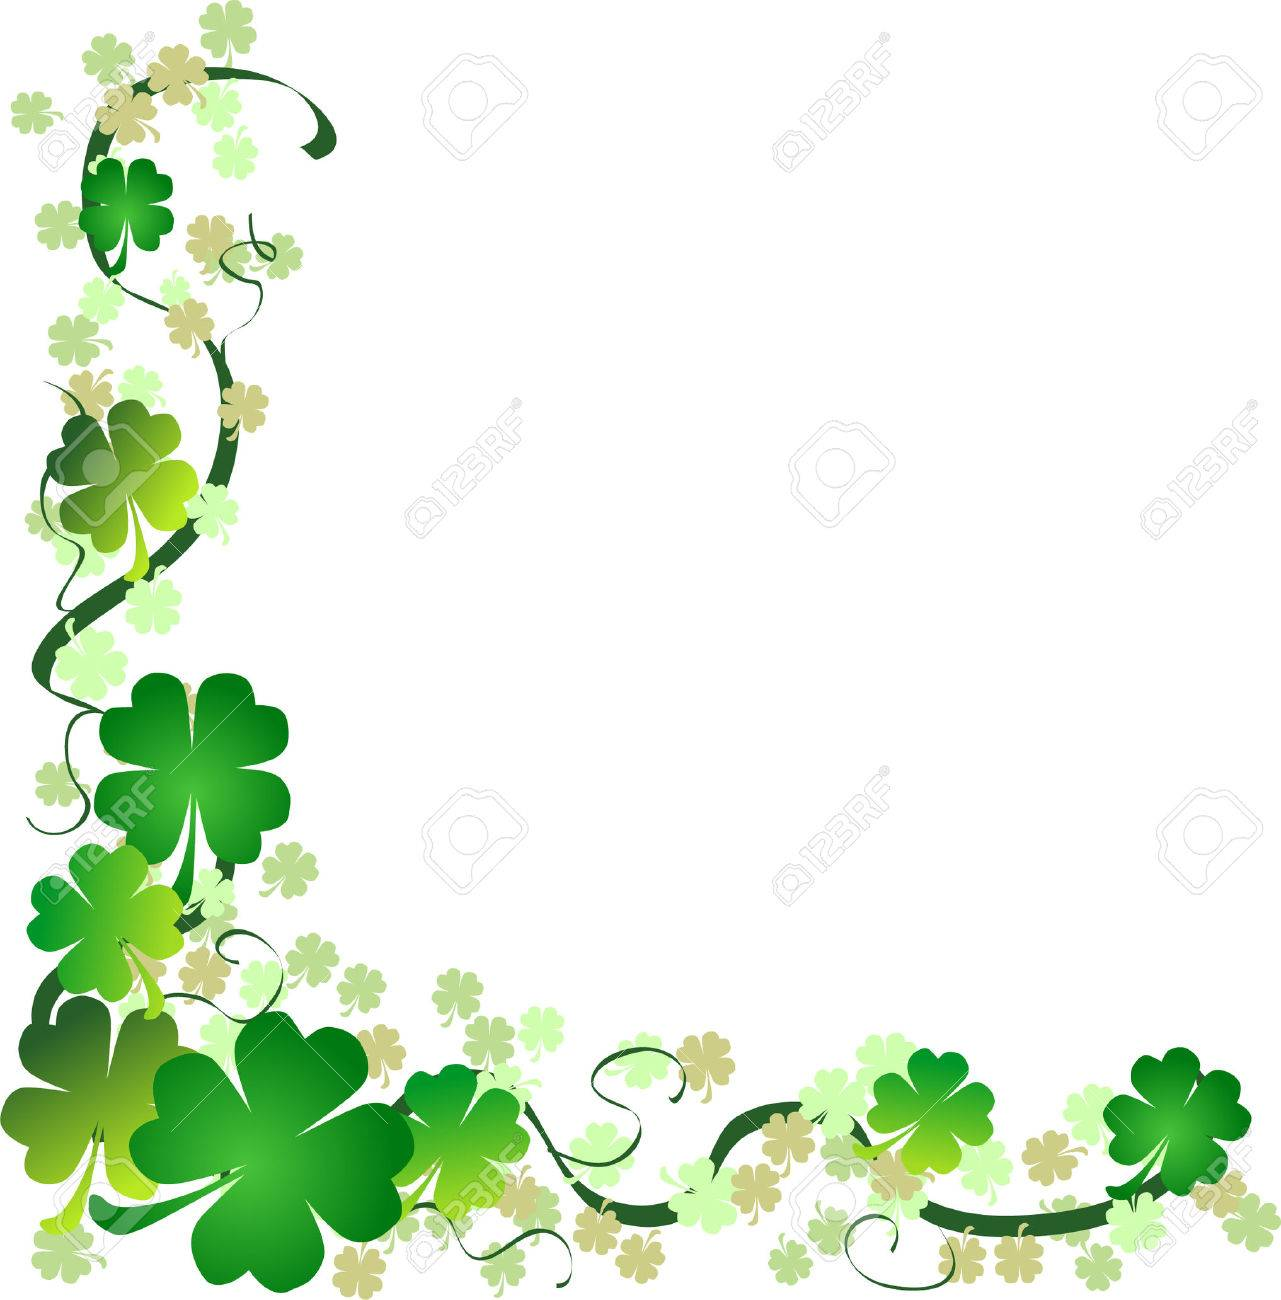 Blurred St Patrick S Day Background With Golden Elements Vector